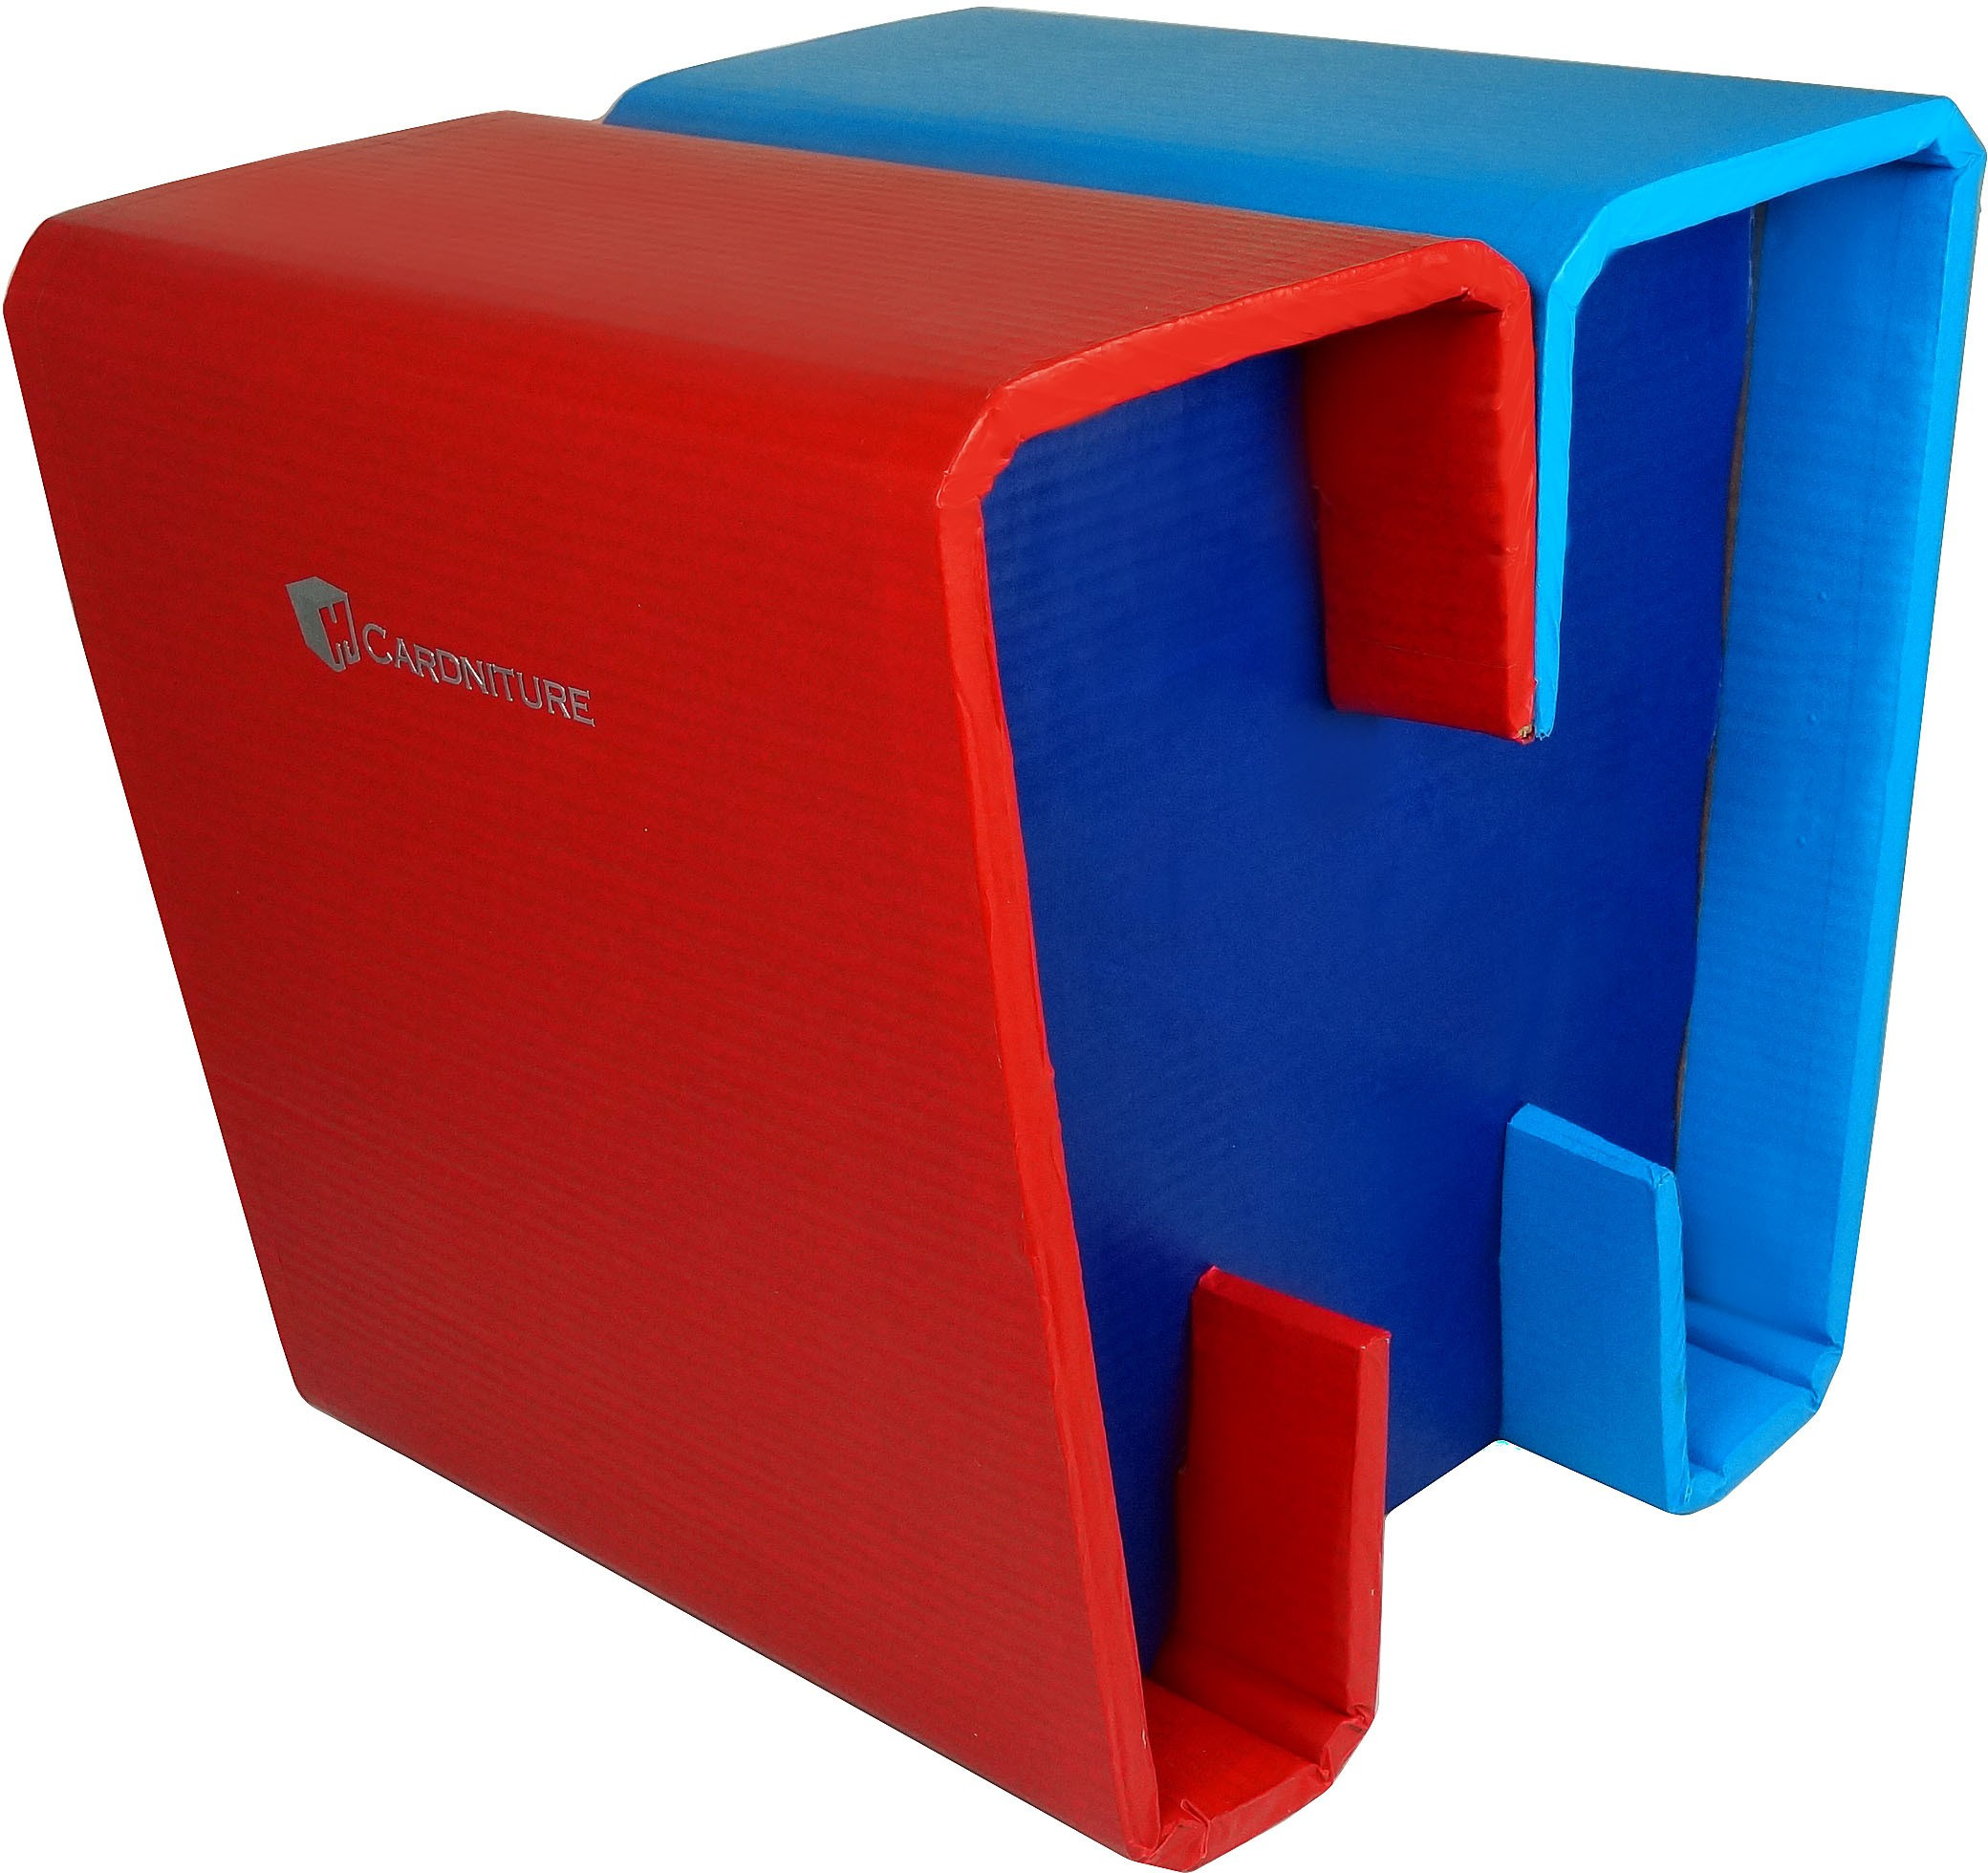 View Cardniture ZING Living & Bedroom Stool(Red, Blue, Orange) Furniture (Cardniture)